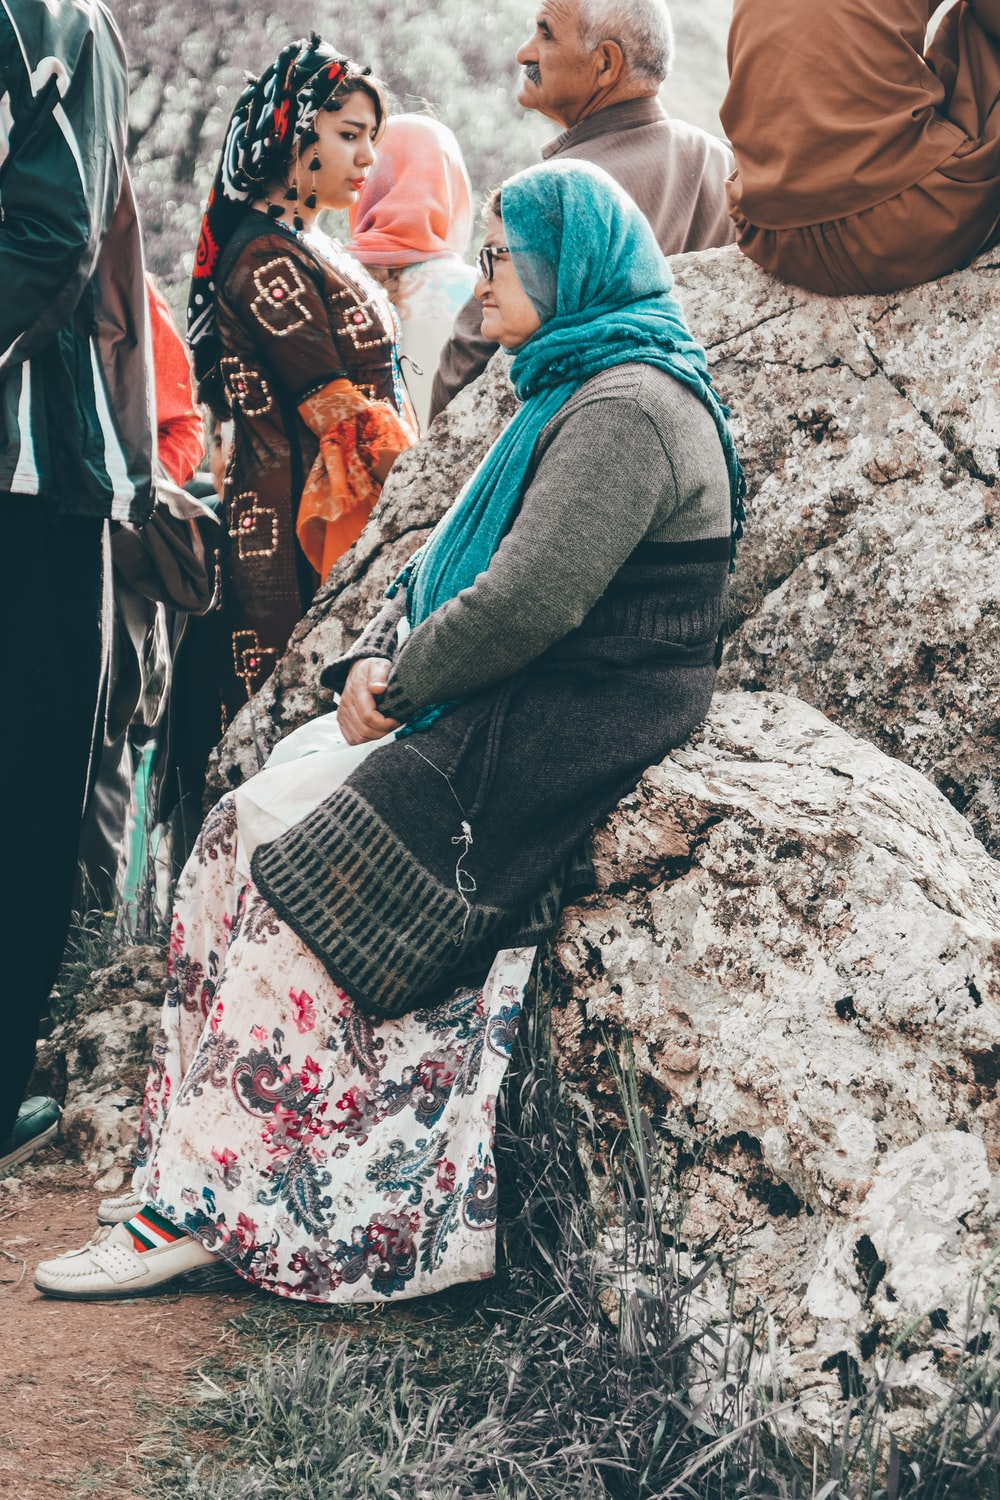 woman in grey long-sleeved shirt and teal scarf sitting on rock during daytime